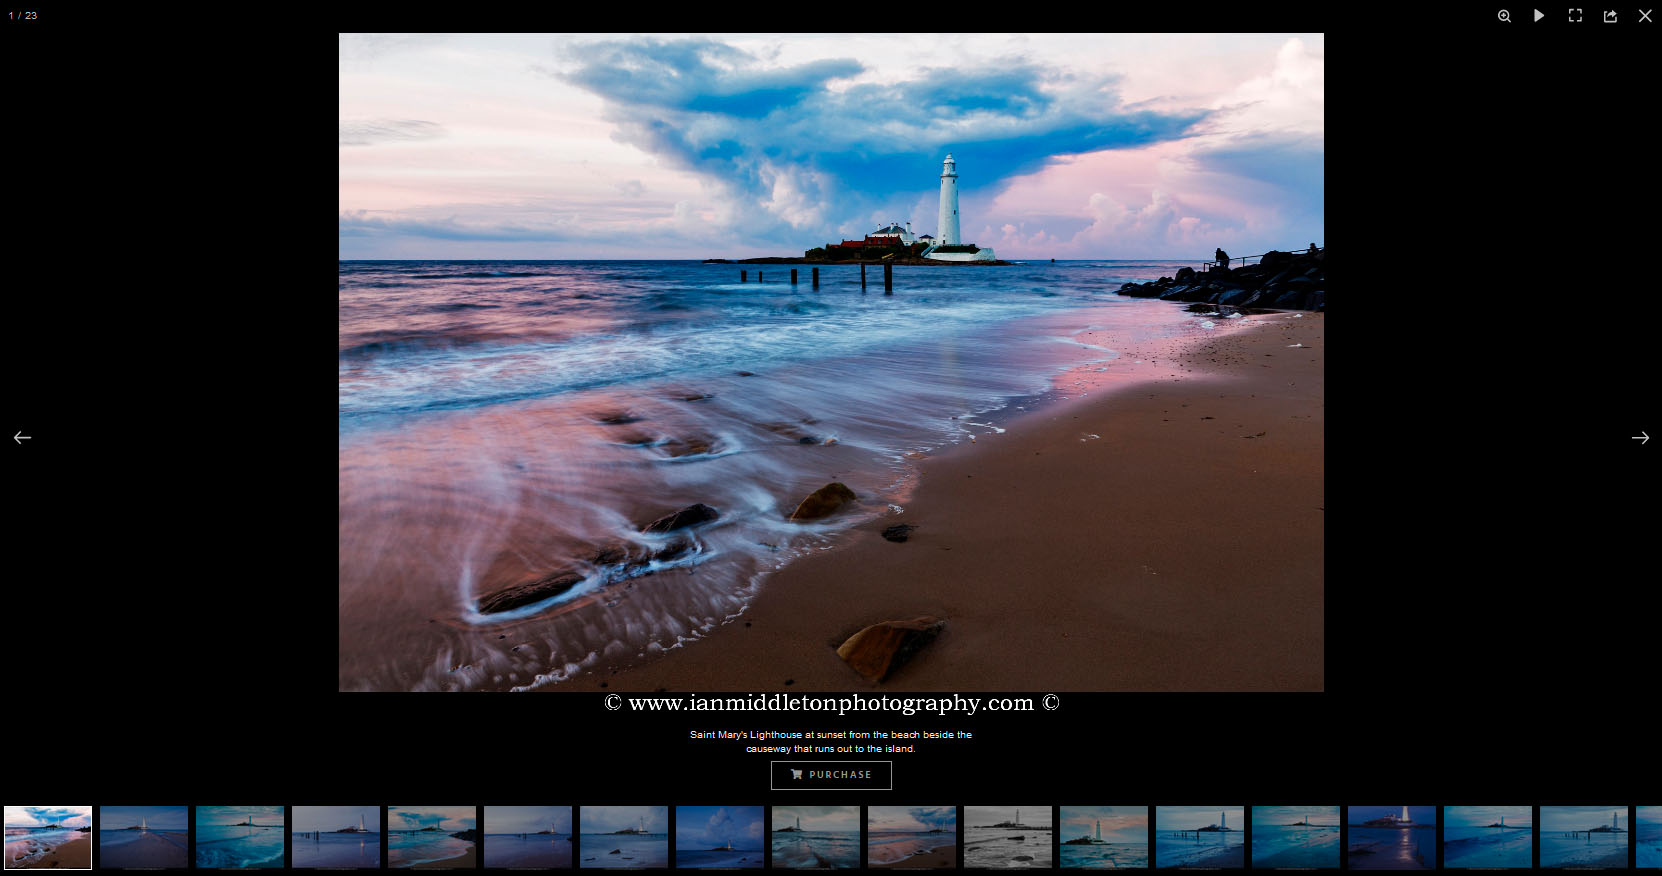 Example of a website photo page setup to sell prints.